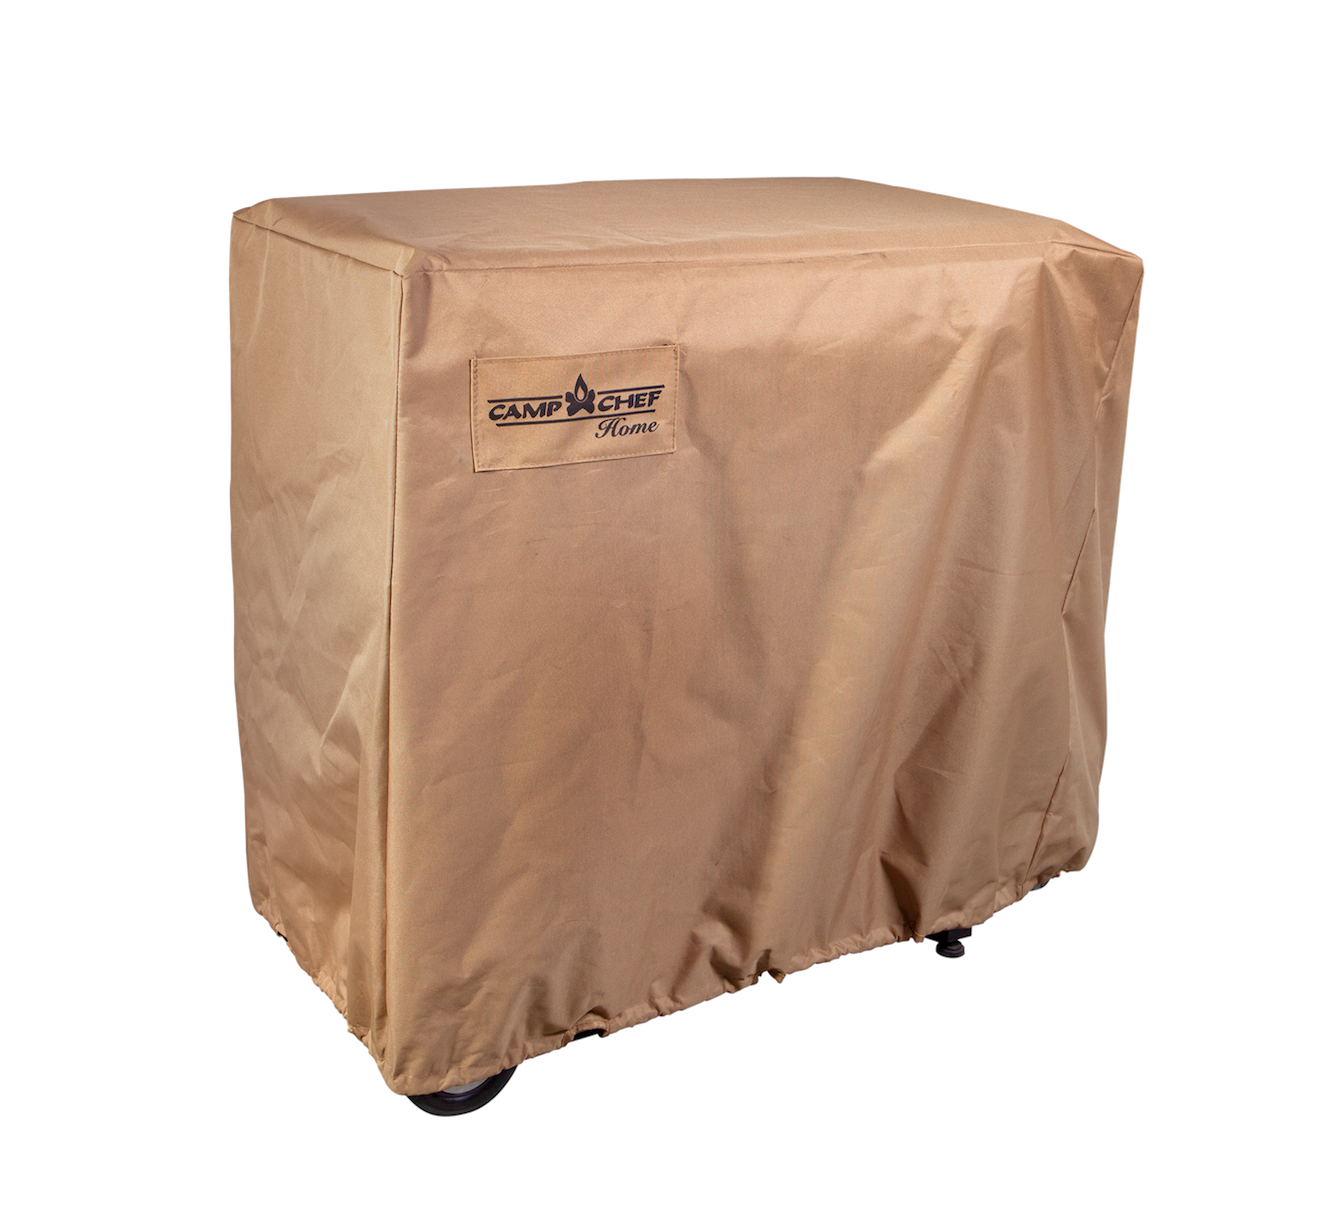 Flat Top Grill Patio Cover, Grill Cover, Flat Top Grill Cover